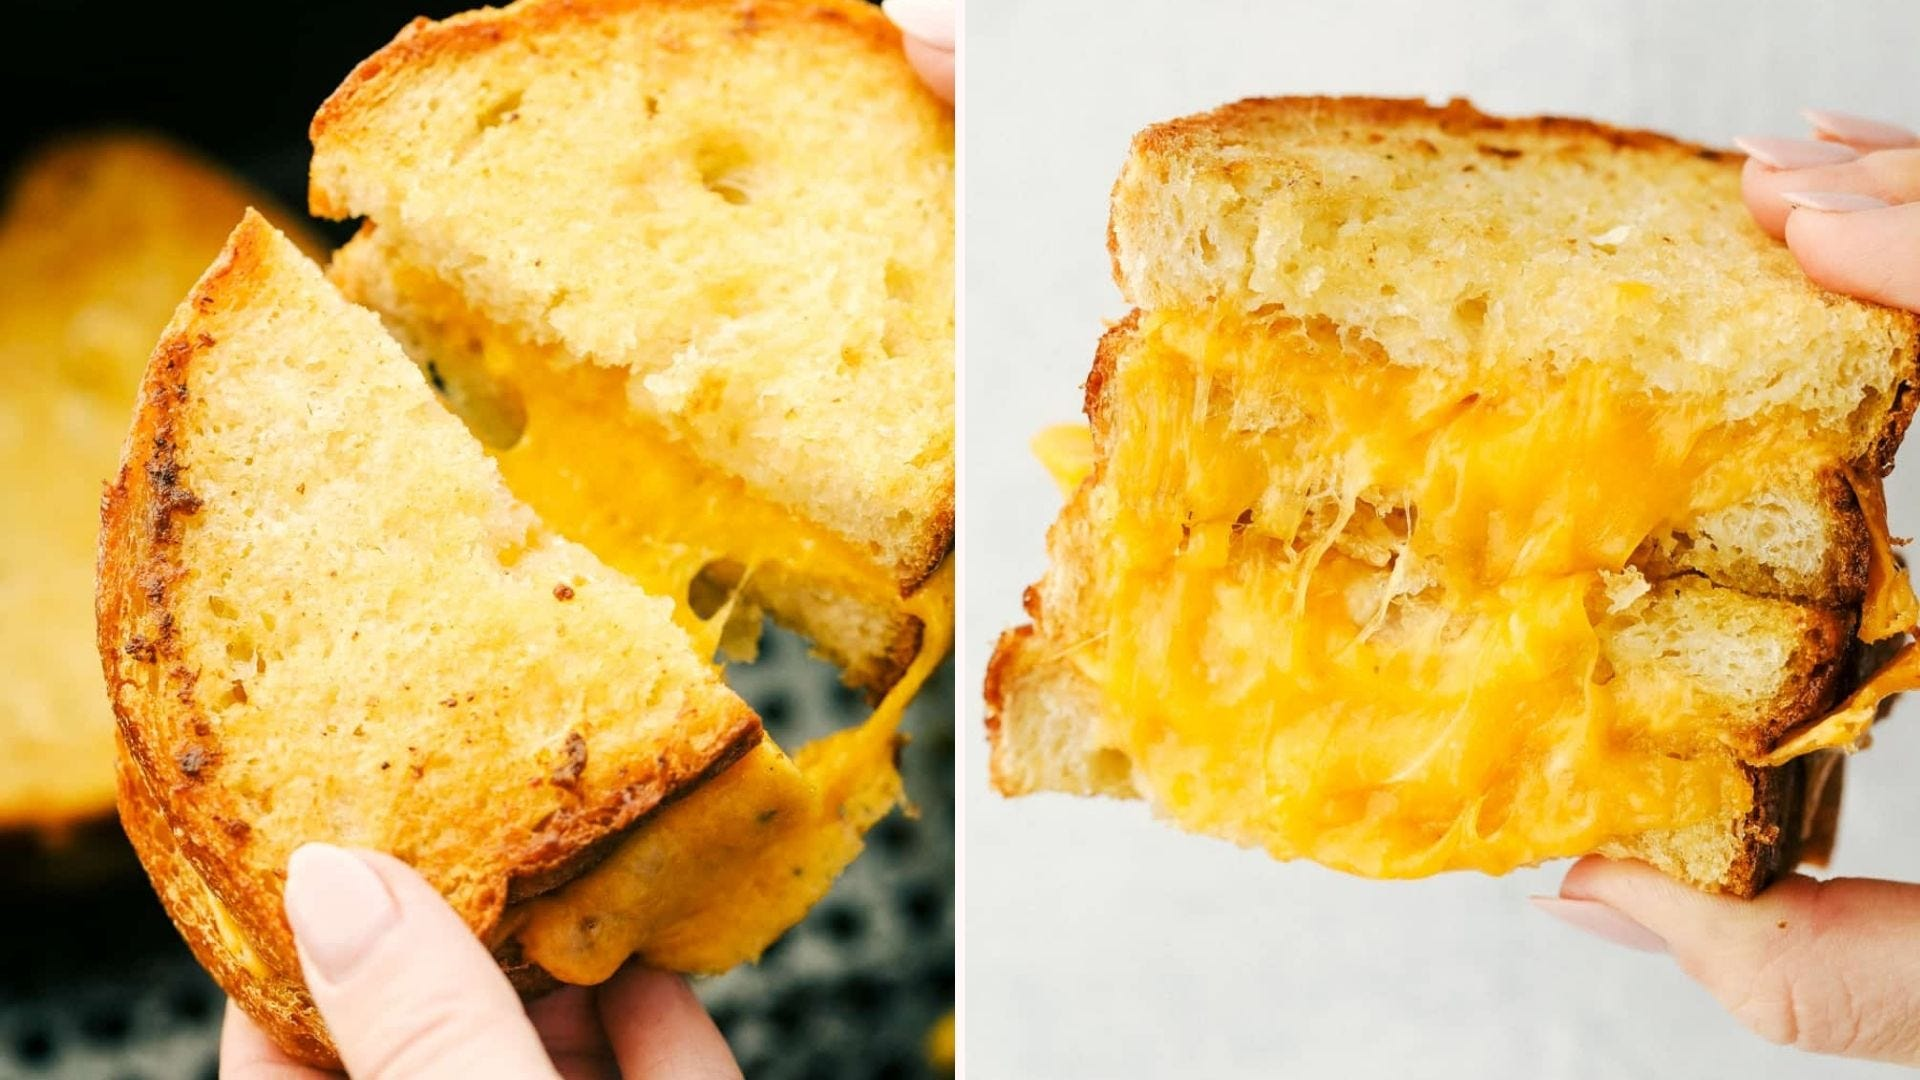 Two images: The left is of a woman holding a grilled cheese sandwich and fulling it apart for an ultimate cheese pull, and the right image is of the sandwich stacked to show the gooey cheese on the inside.